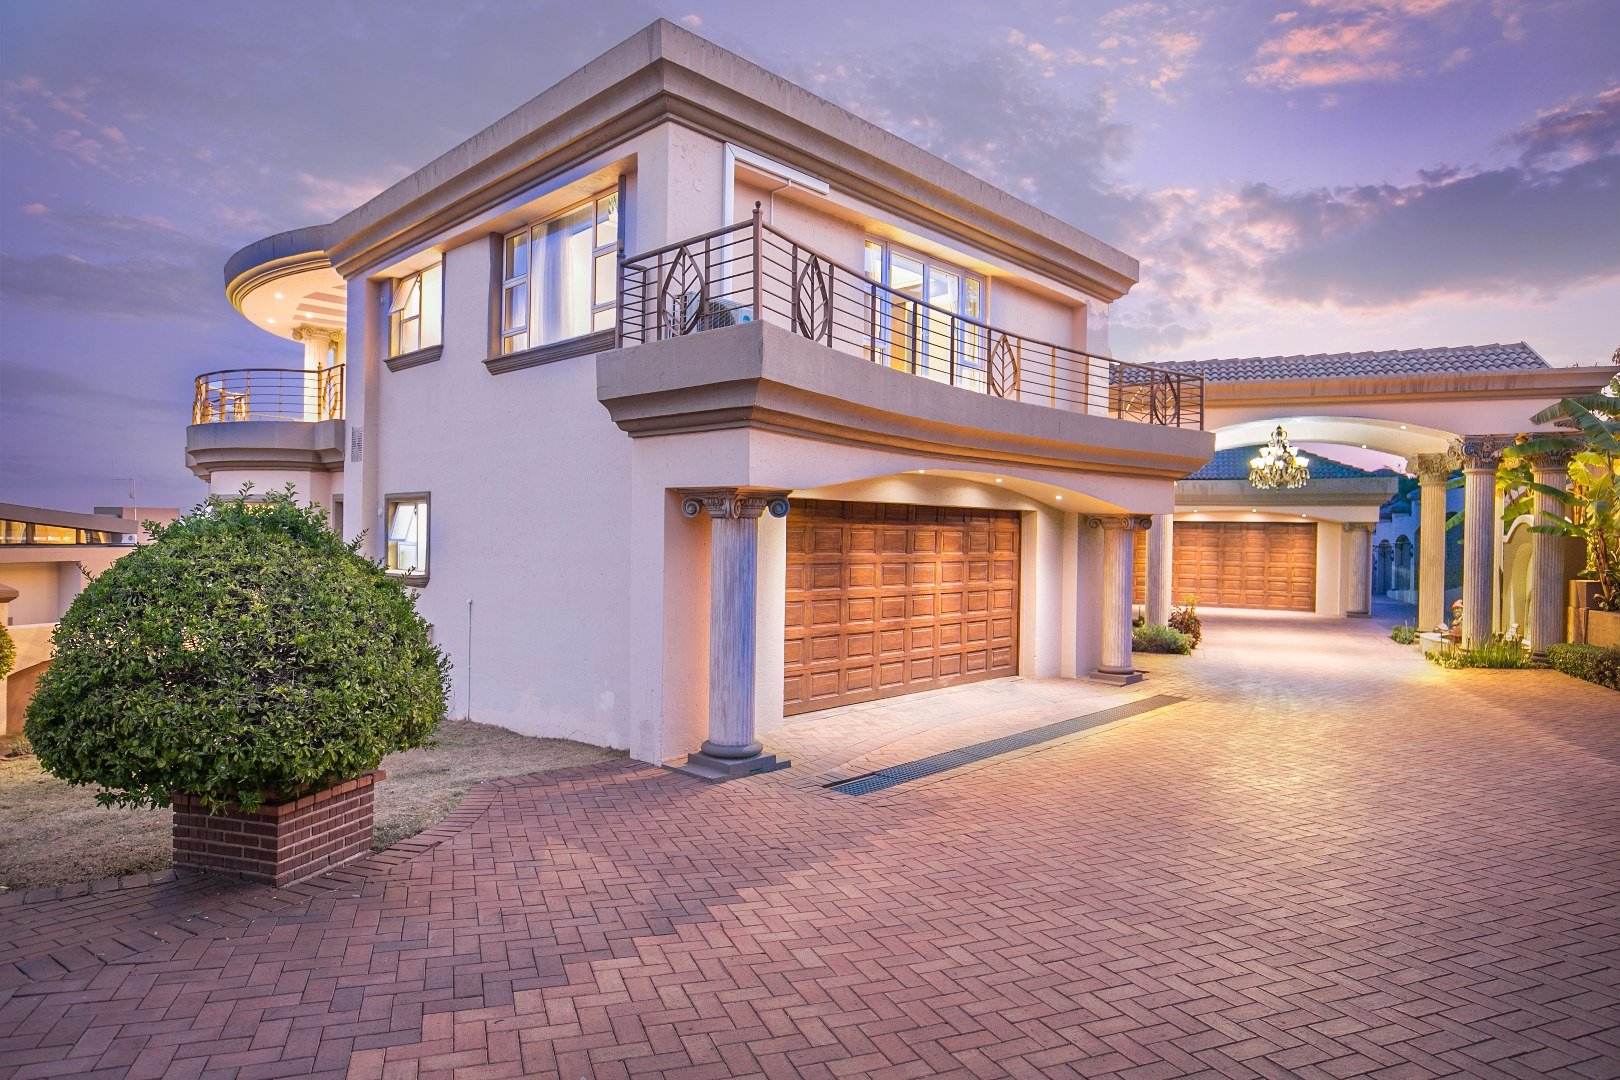 Alberton meyersdal eco estate property houses for sale for Eco houses for sale